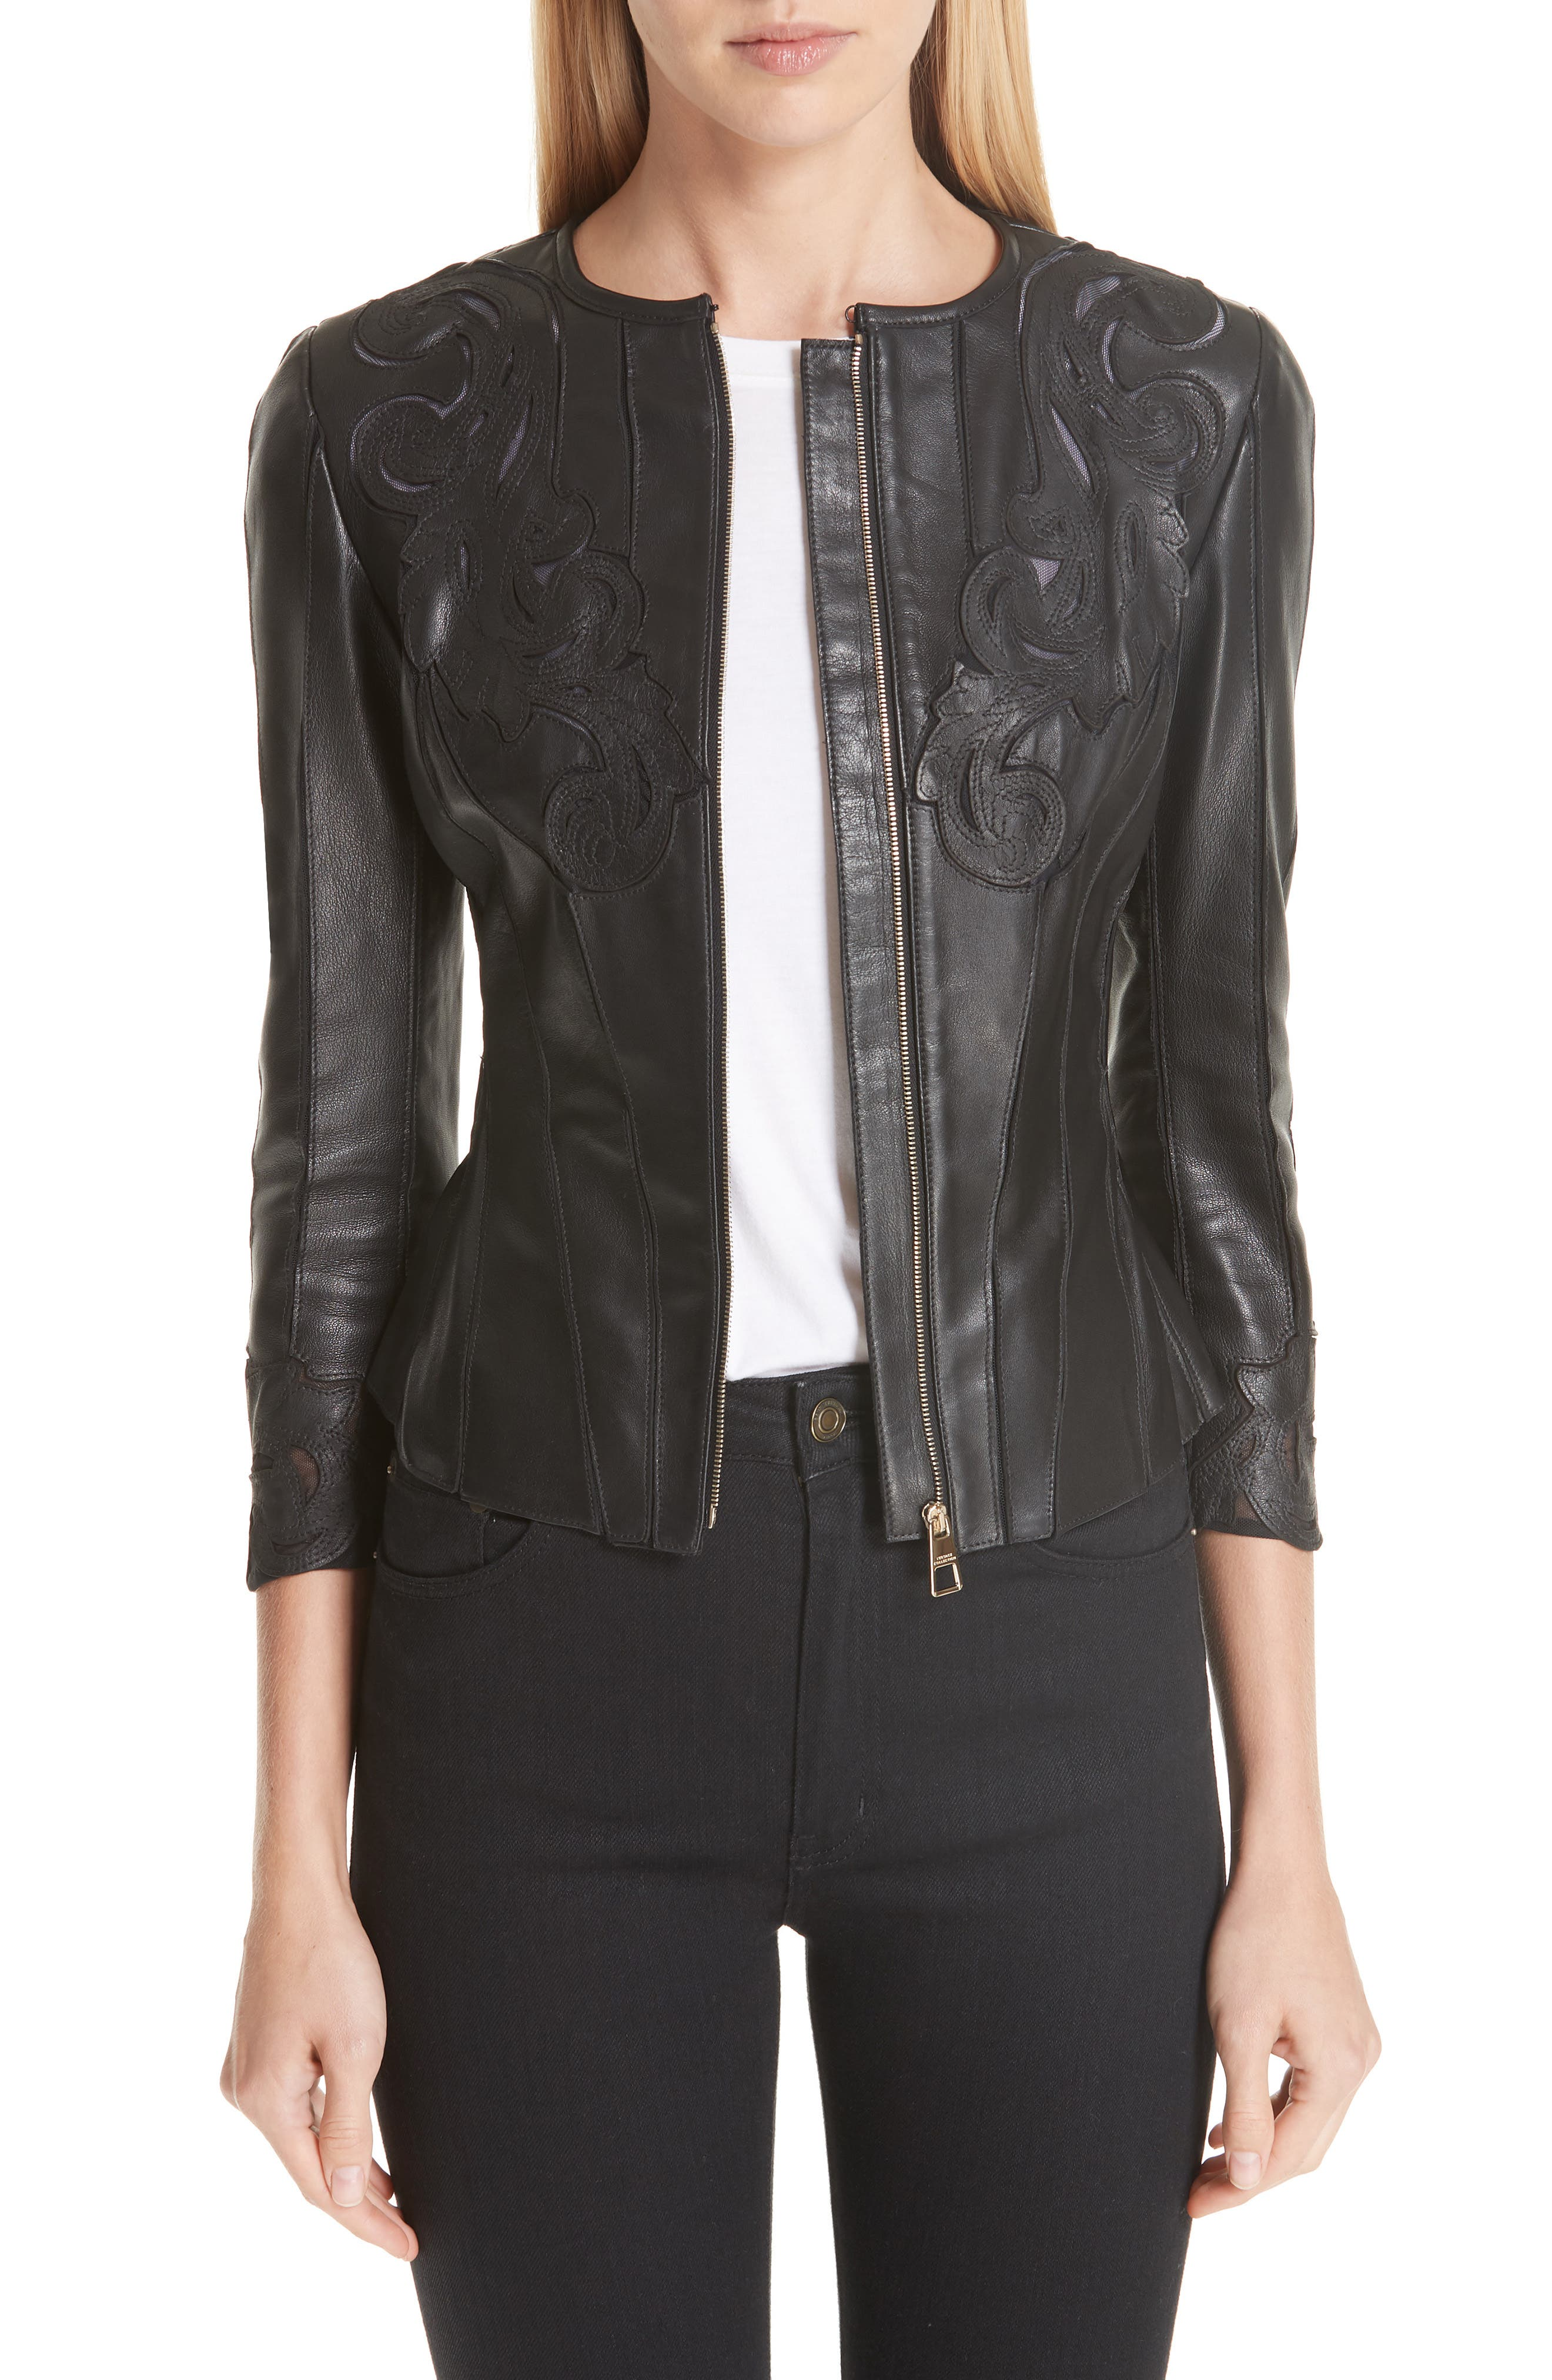 VERSACE COLLECTION, Fitted Leather Jacket, Main thumbnail 1, color, BLACK